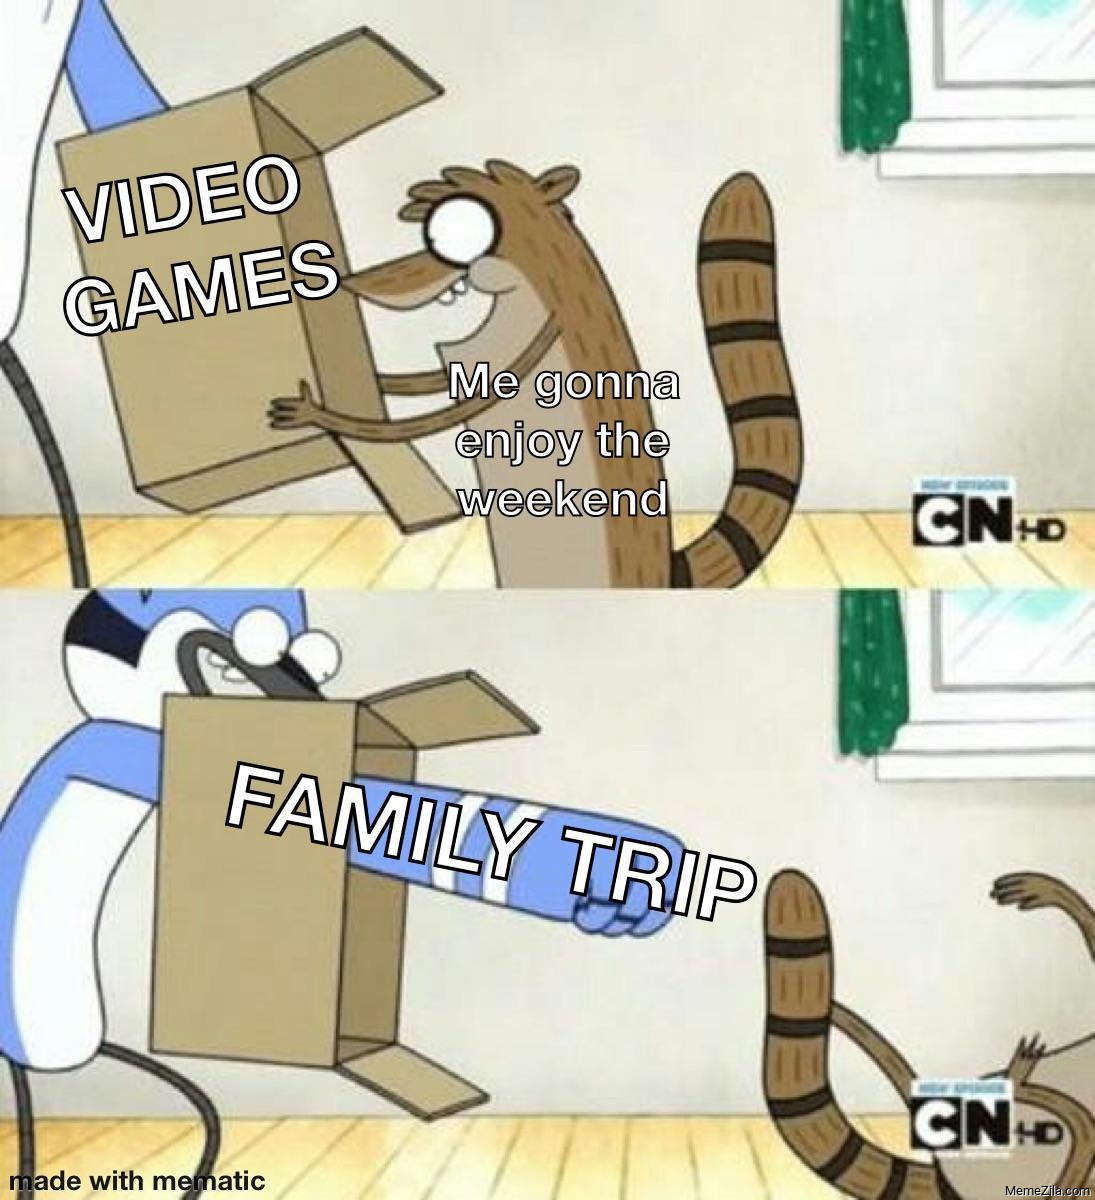 Video games Me gonna enjoy the weekend Meanwhile family trip meme